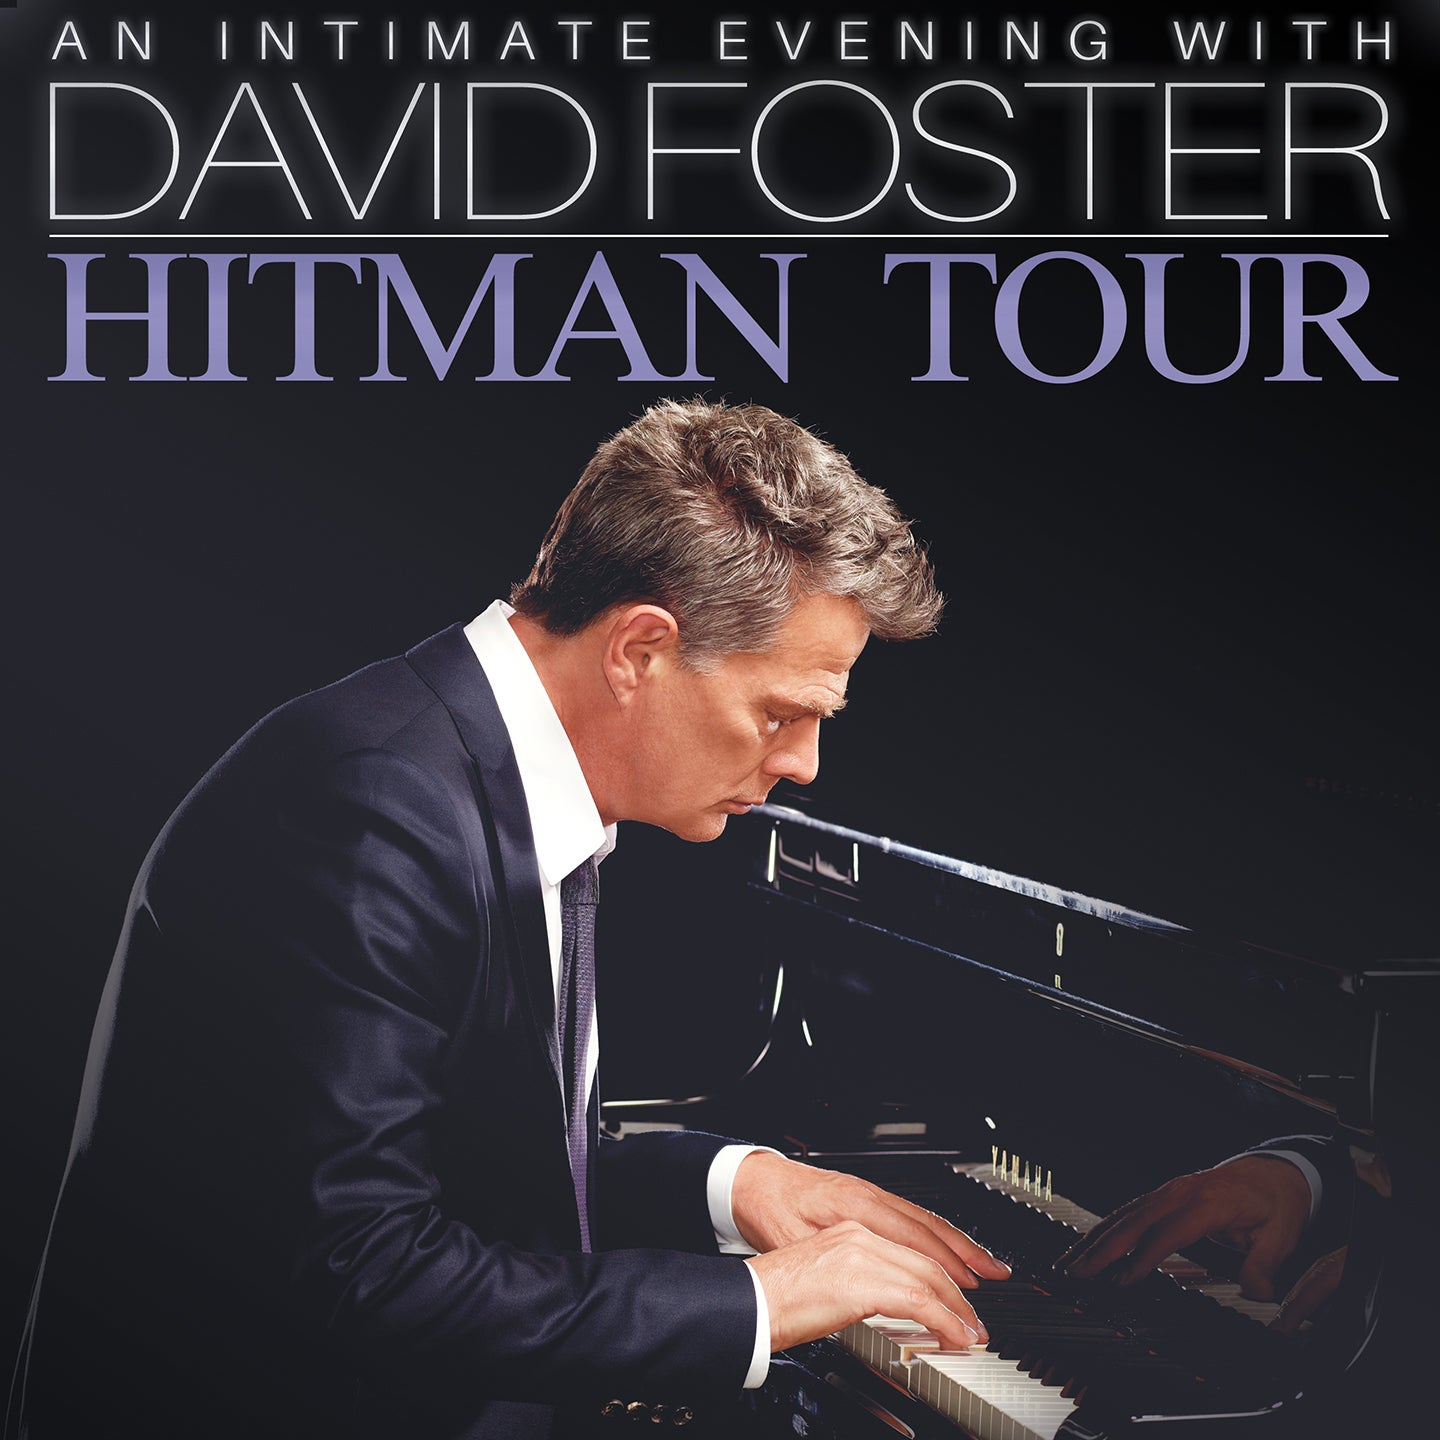 An Intimate Evening with David Foster: Hitman Tour